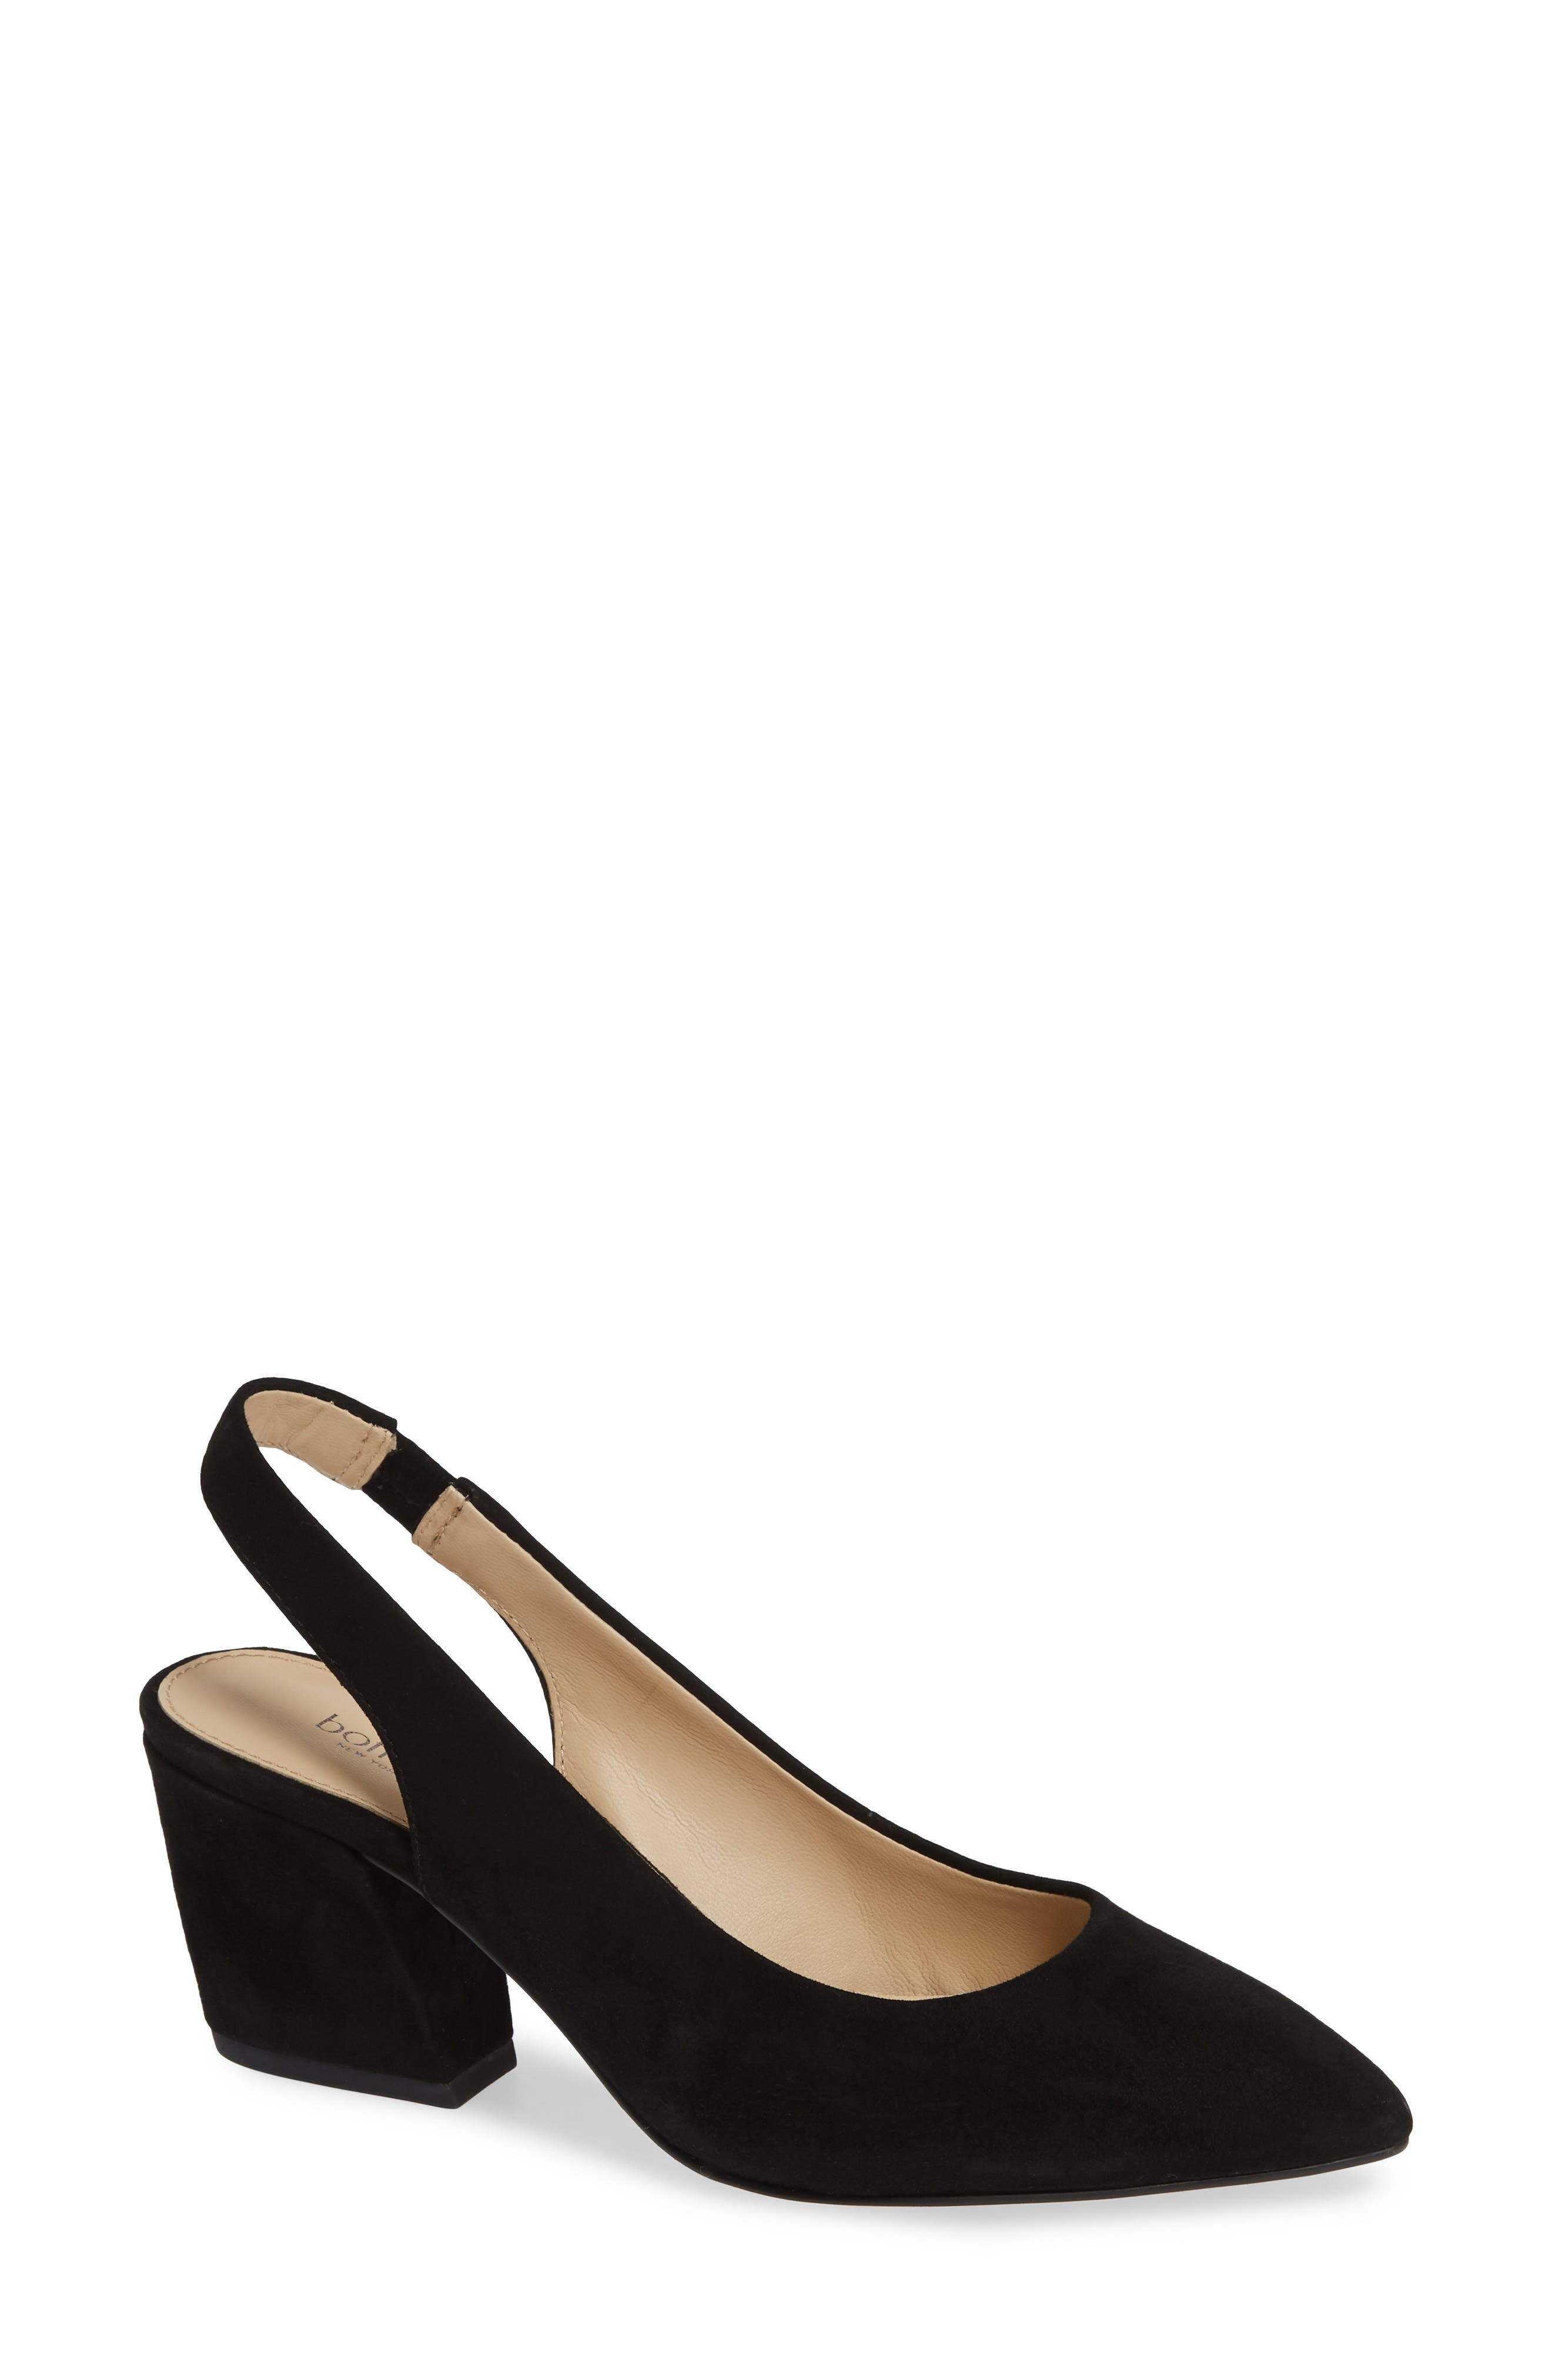 A gently sloped heel lifts a perfectly poised slingback pump crafted from soft suede. Style Name: Botkier Shayla Slingback Pump (Women). Style Number: 5745845 4. Available in stores.